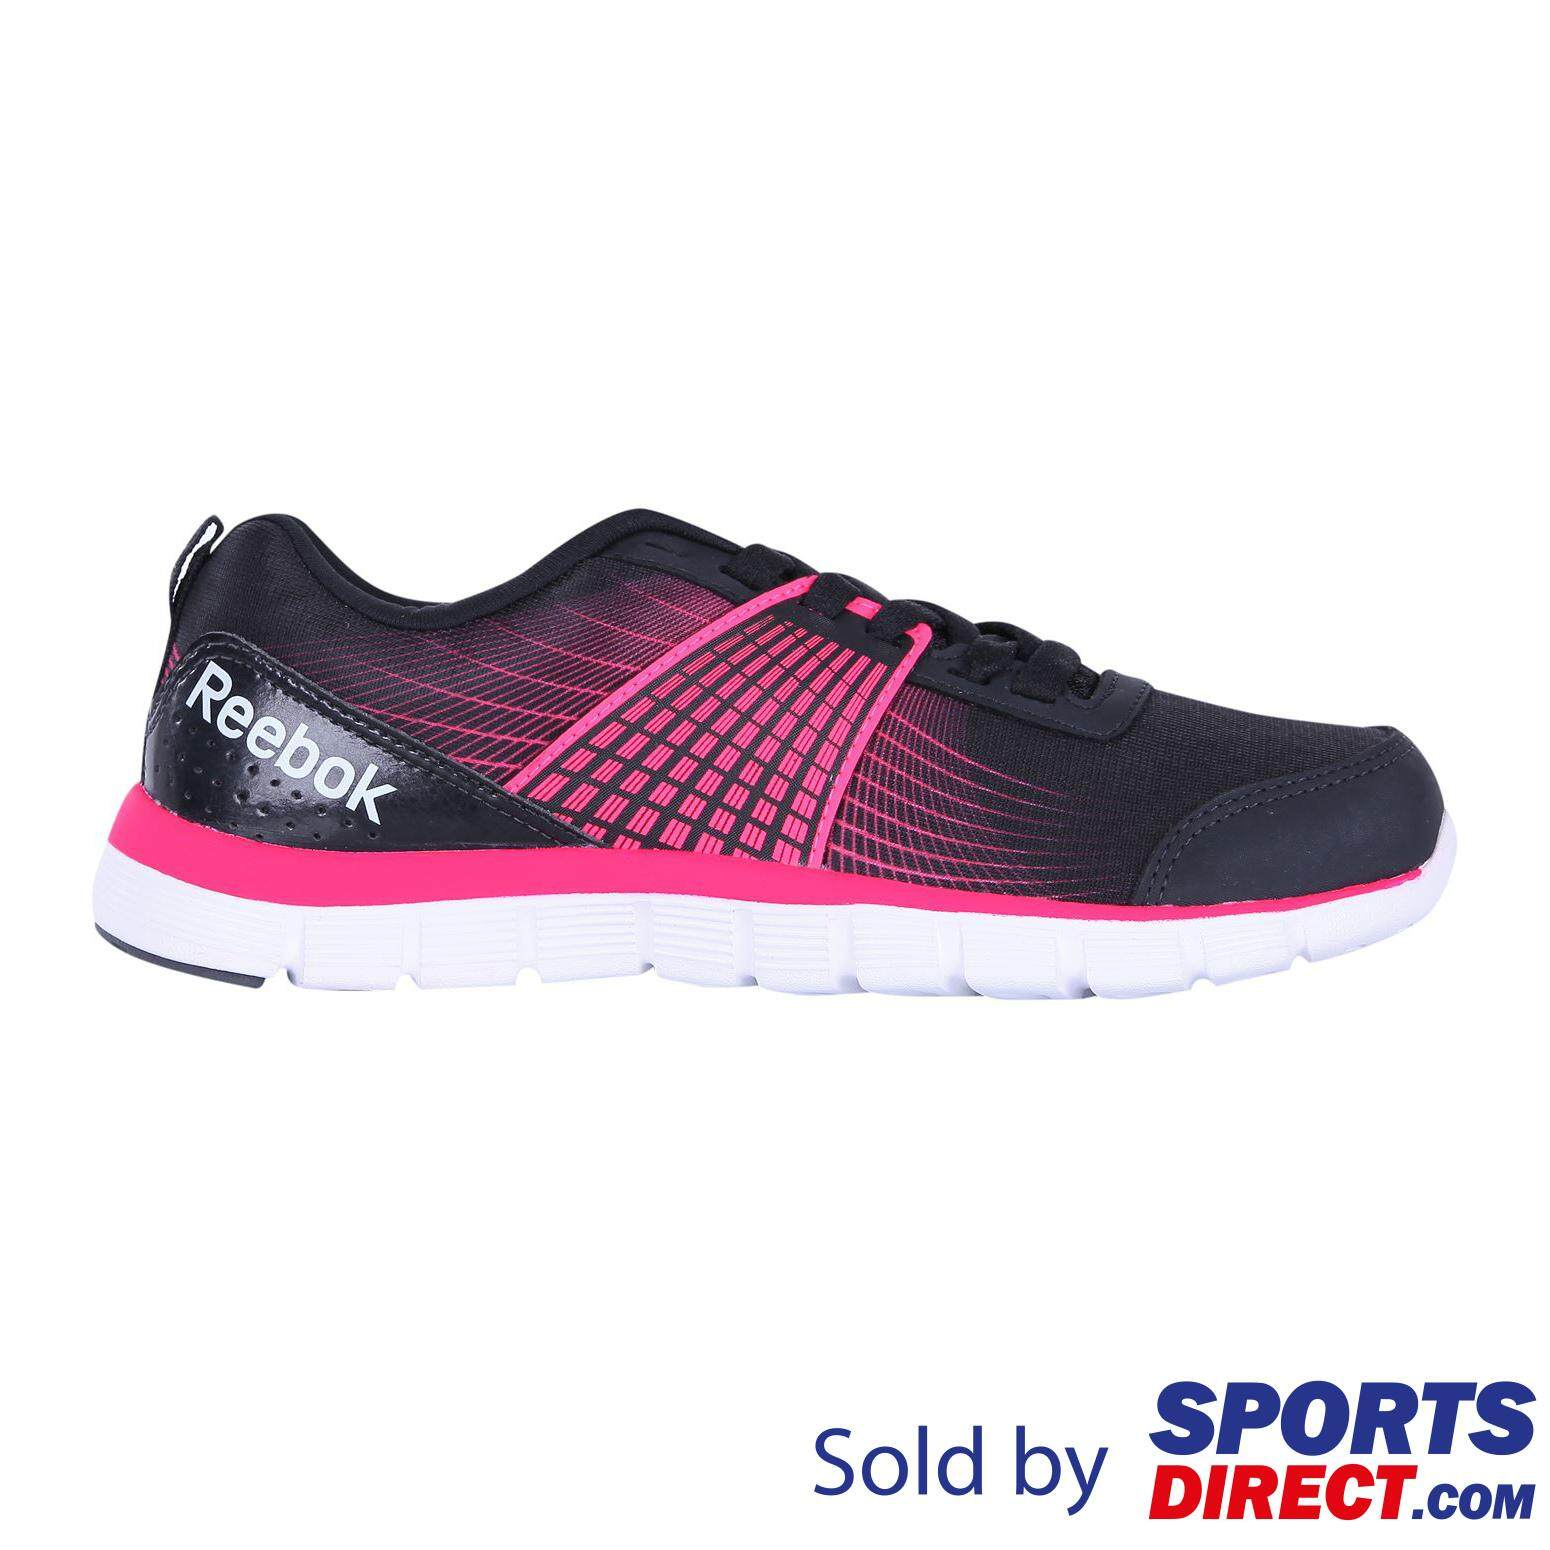 Reebok Shoes Malaysia Price Women's Running In Best Sports KJc3F1Tlu